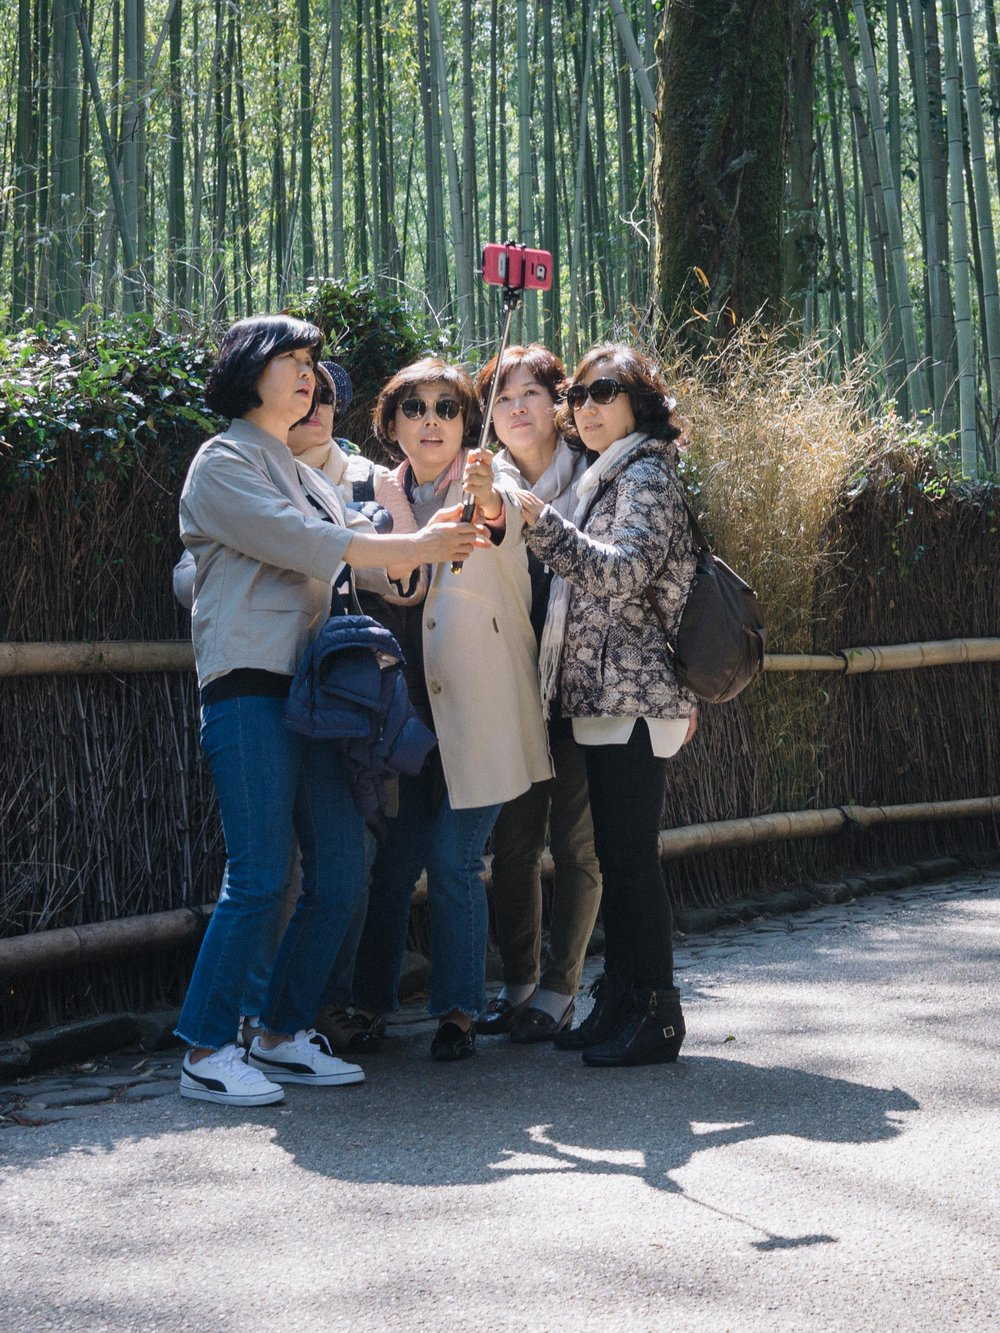 Five women, one selfie stick